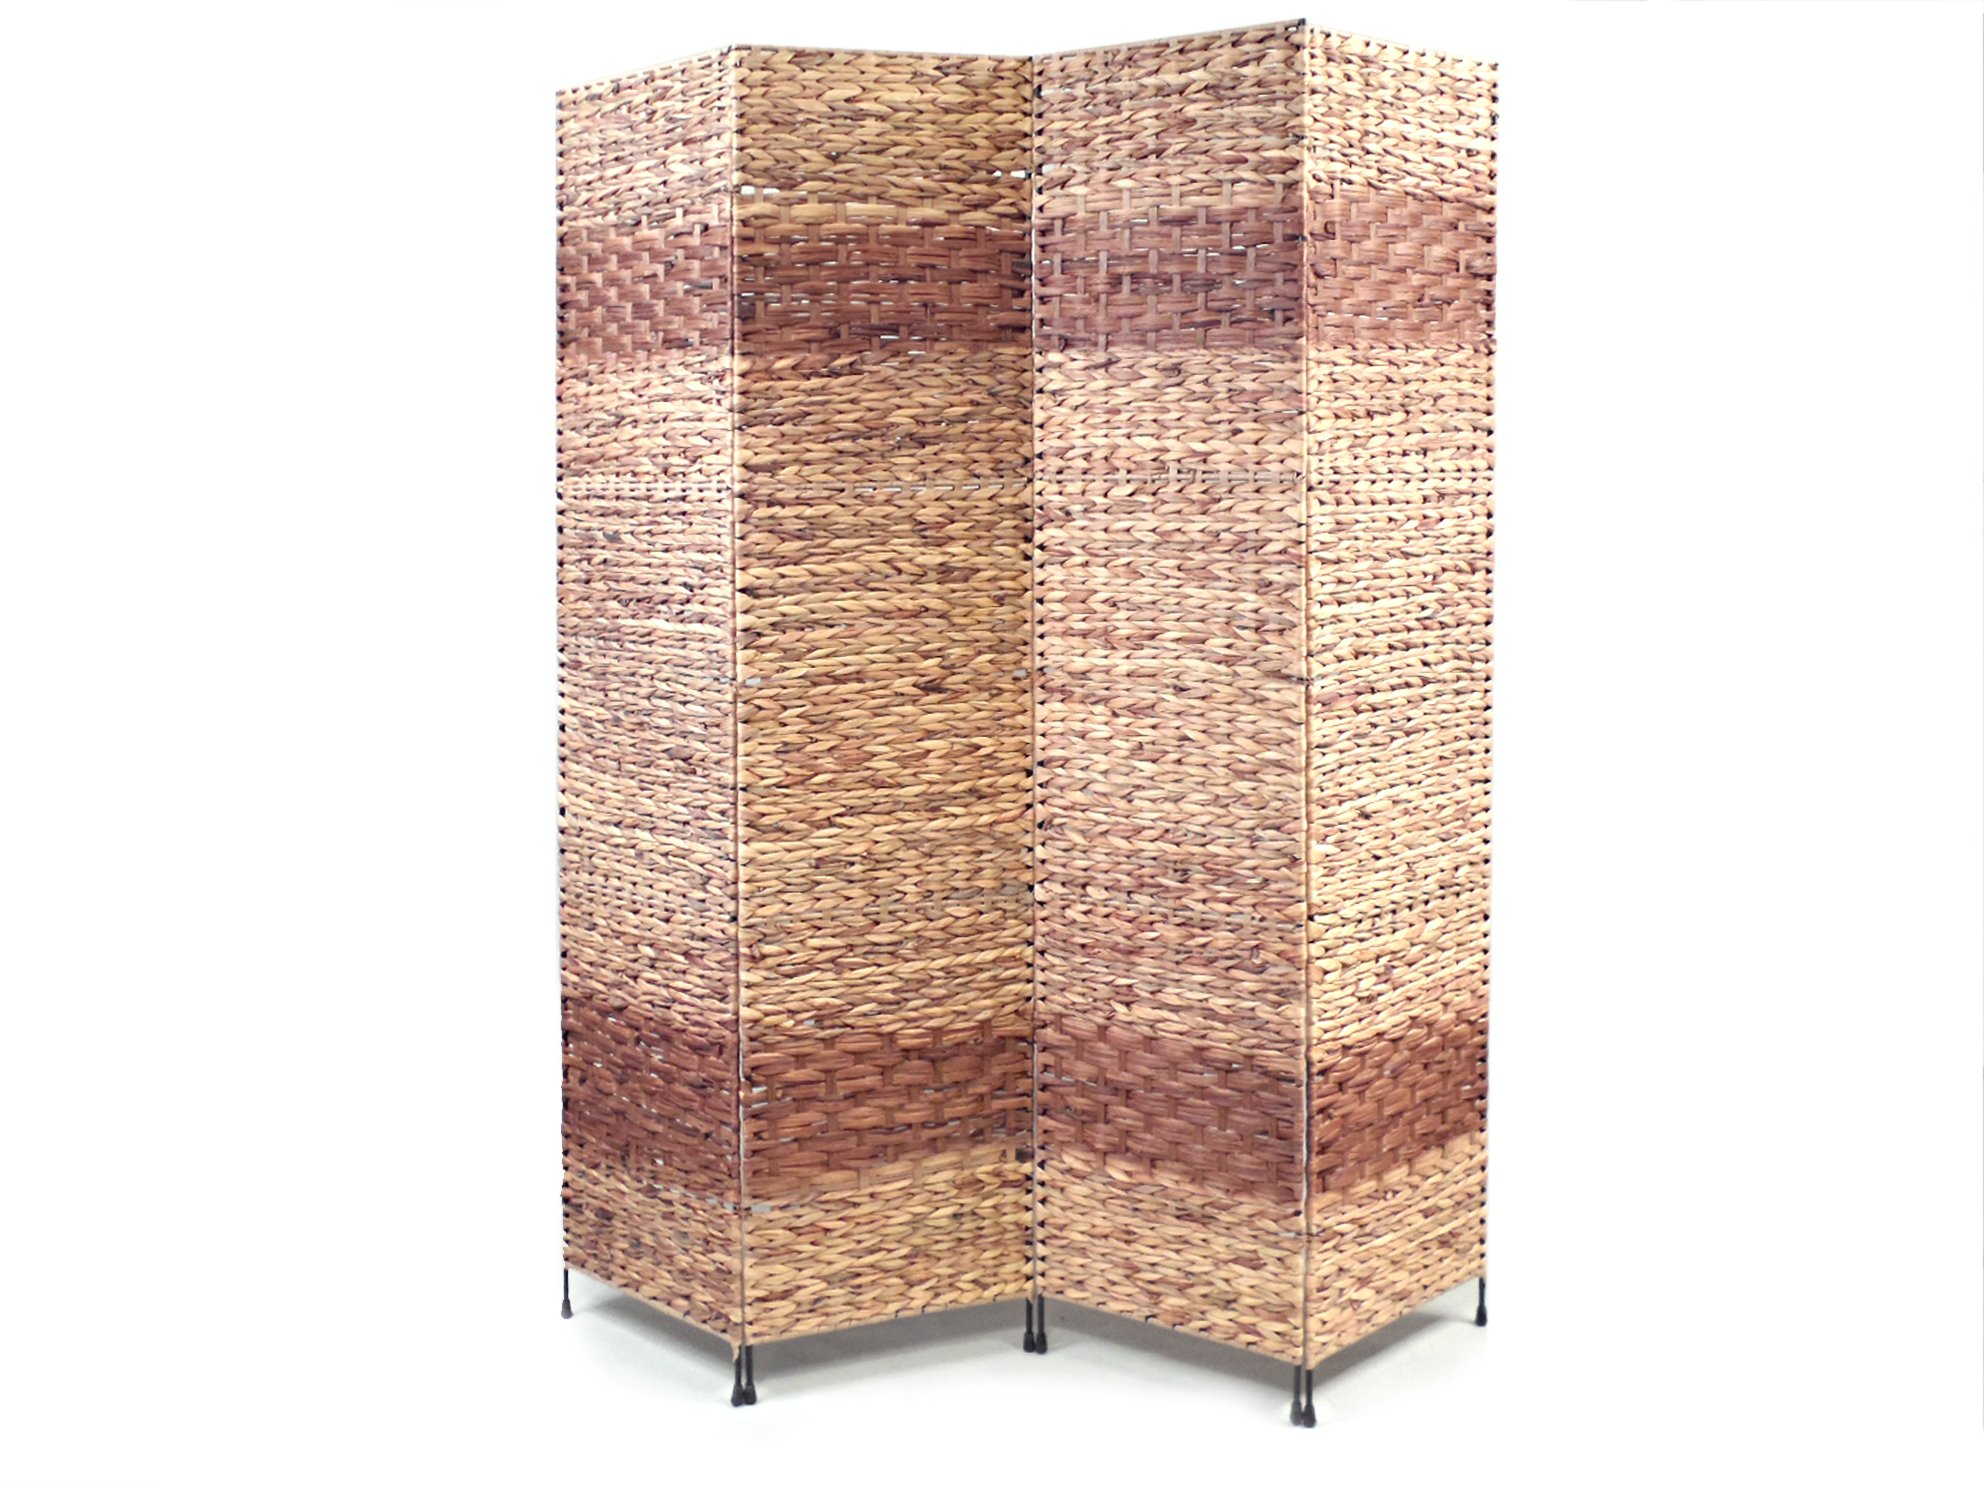 Proman Products Jakarta-B Folding Screen Metal Frame w/Water Hyacinth Inserts Natural Color Espresso Bands 4 panels, 60'' W x 67'' H x 1'' D